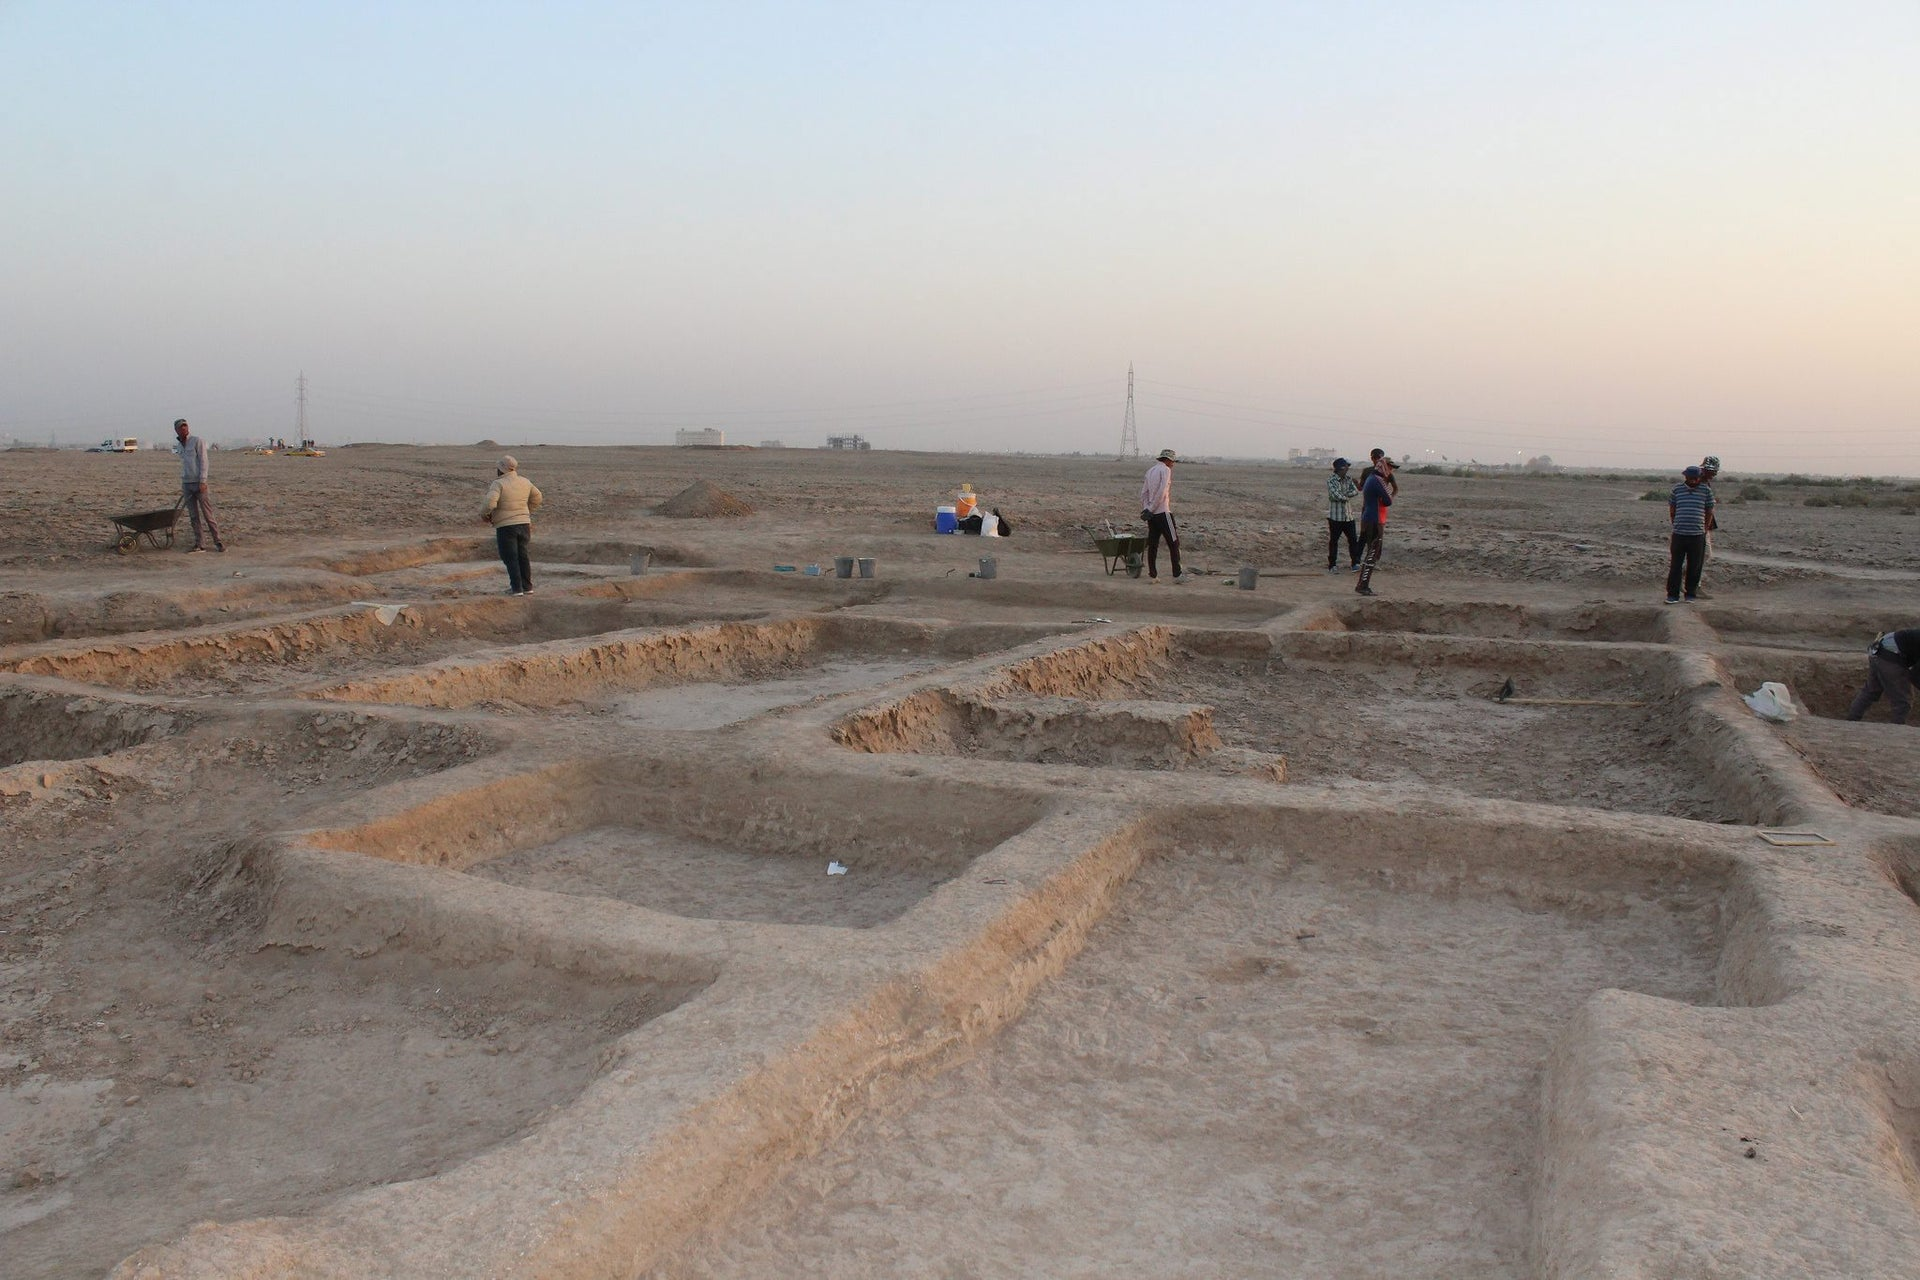 Building in Abu Tbeirah, Iraq: Sumerian port city from 4,000 years ago